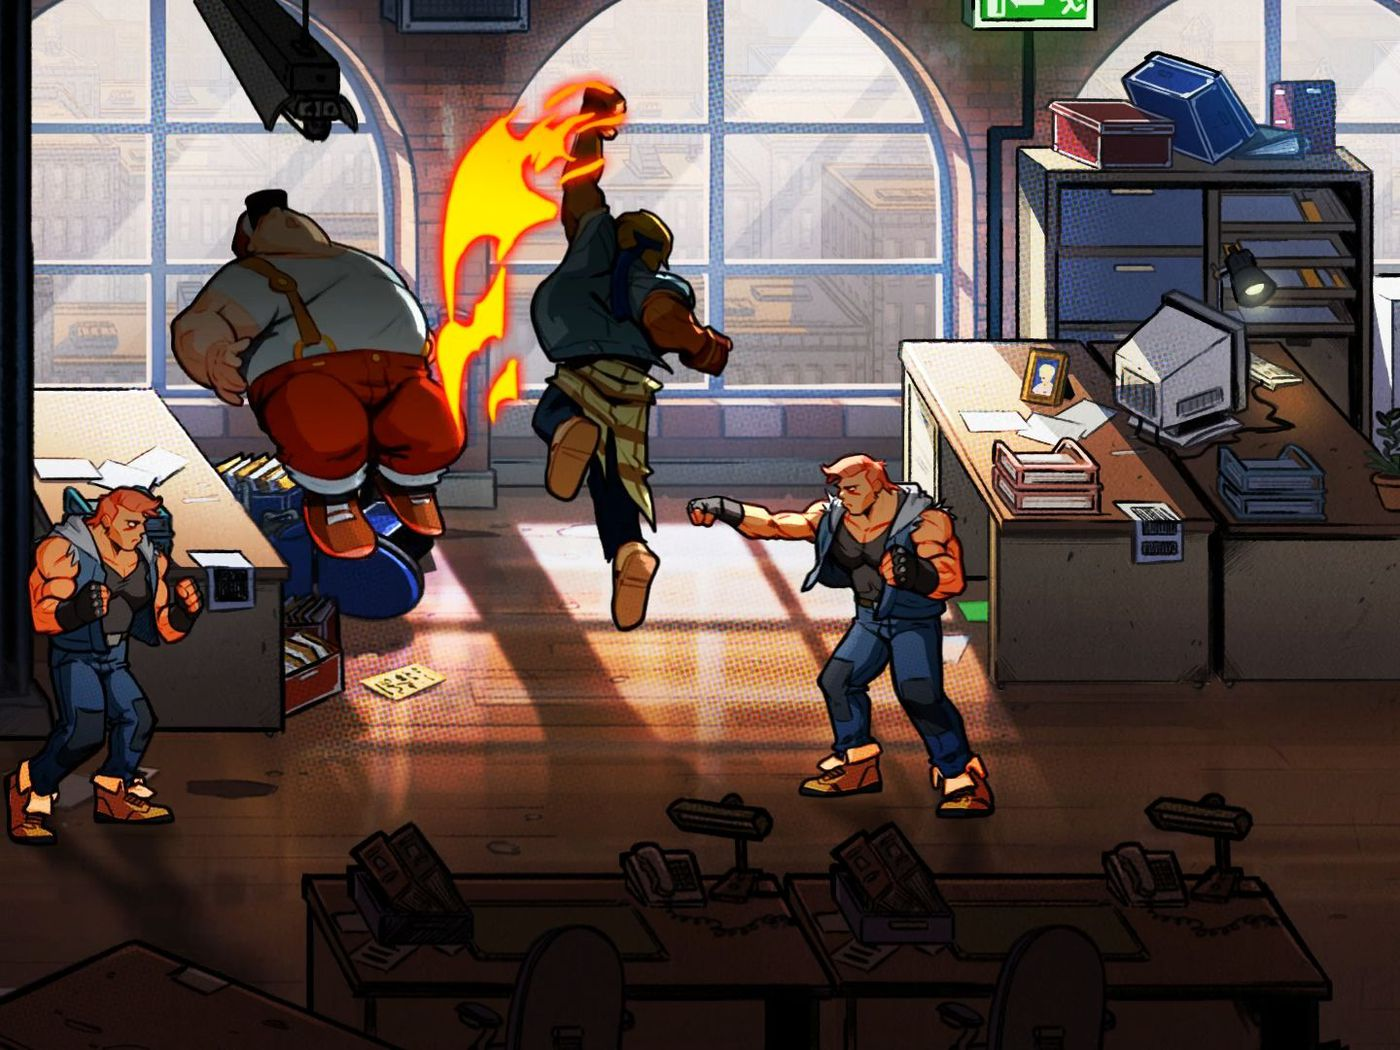 The Week S Best Game Trailers Streets Of Rage 4 And The Last